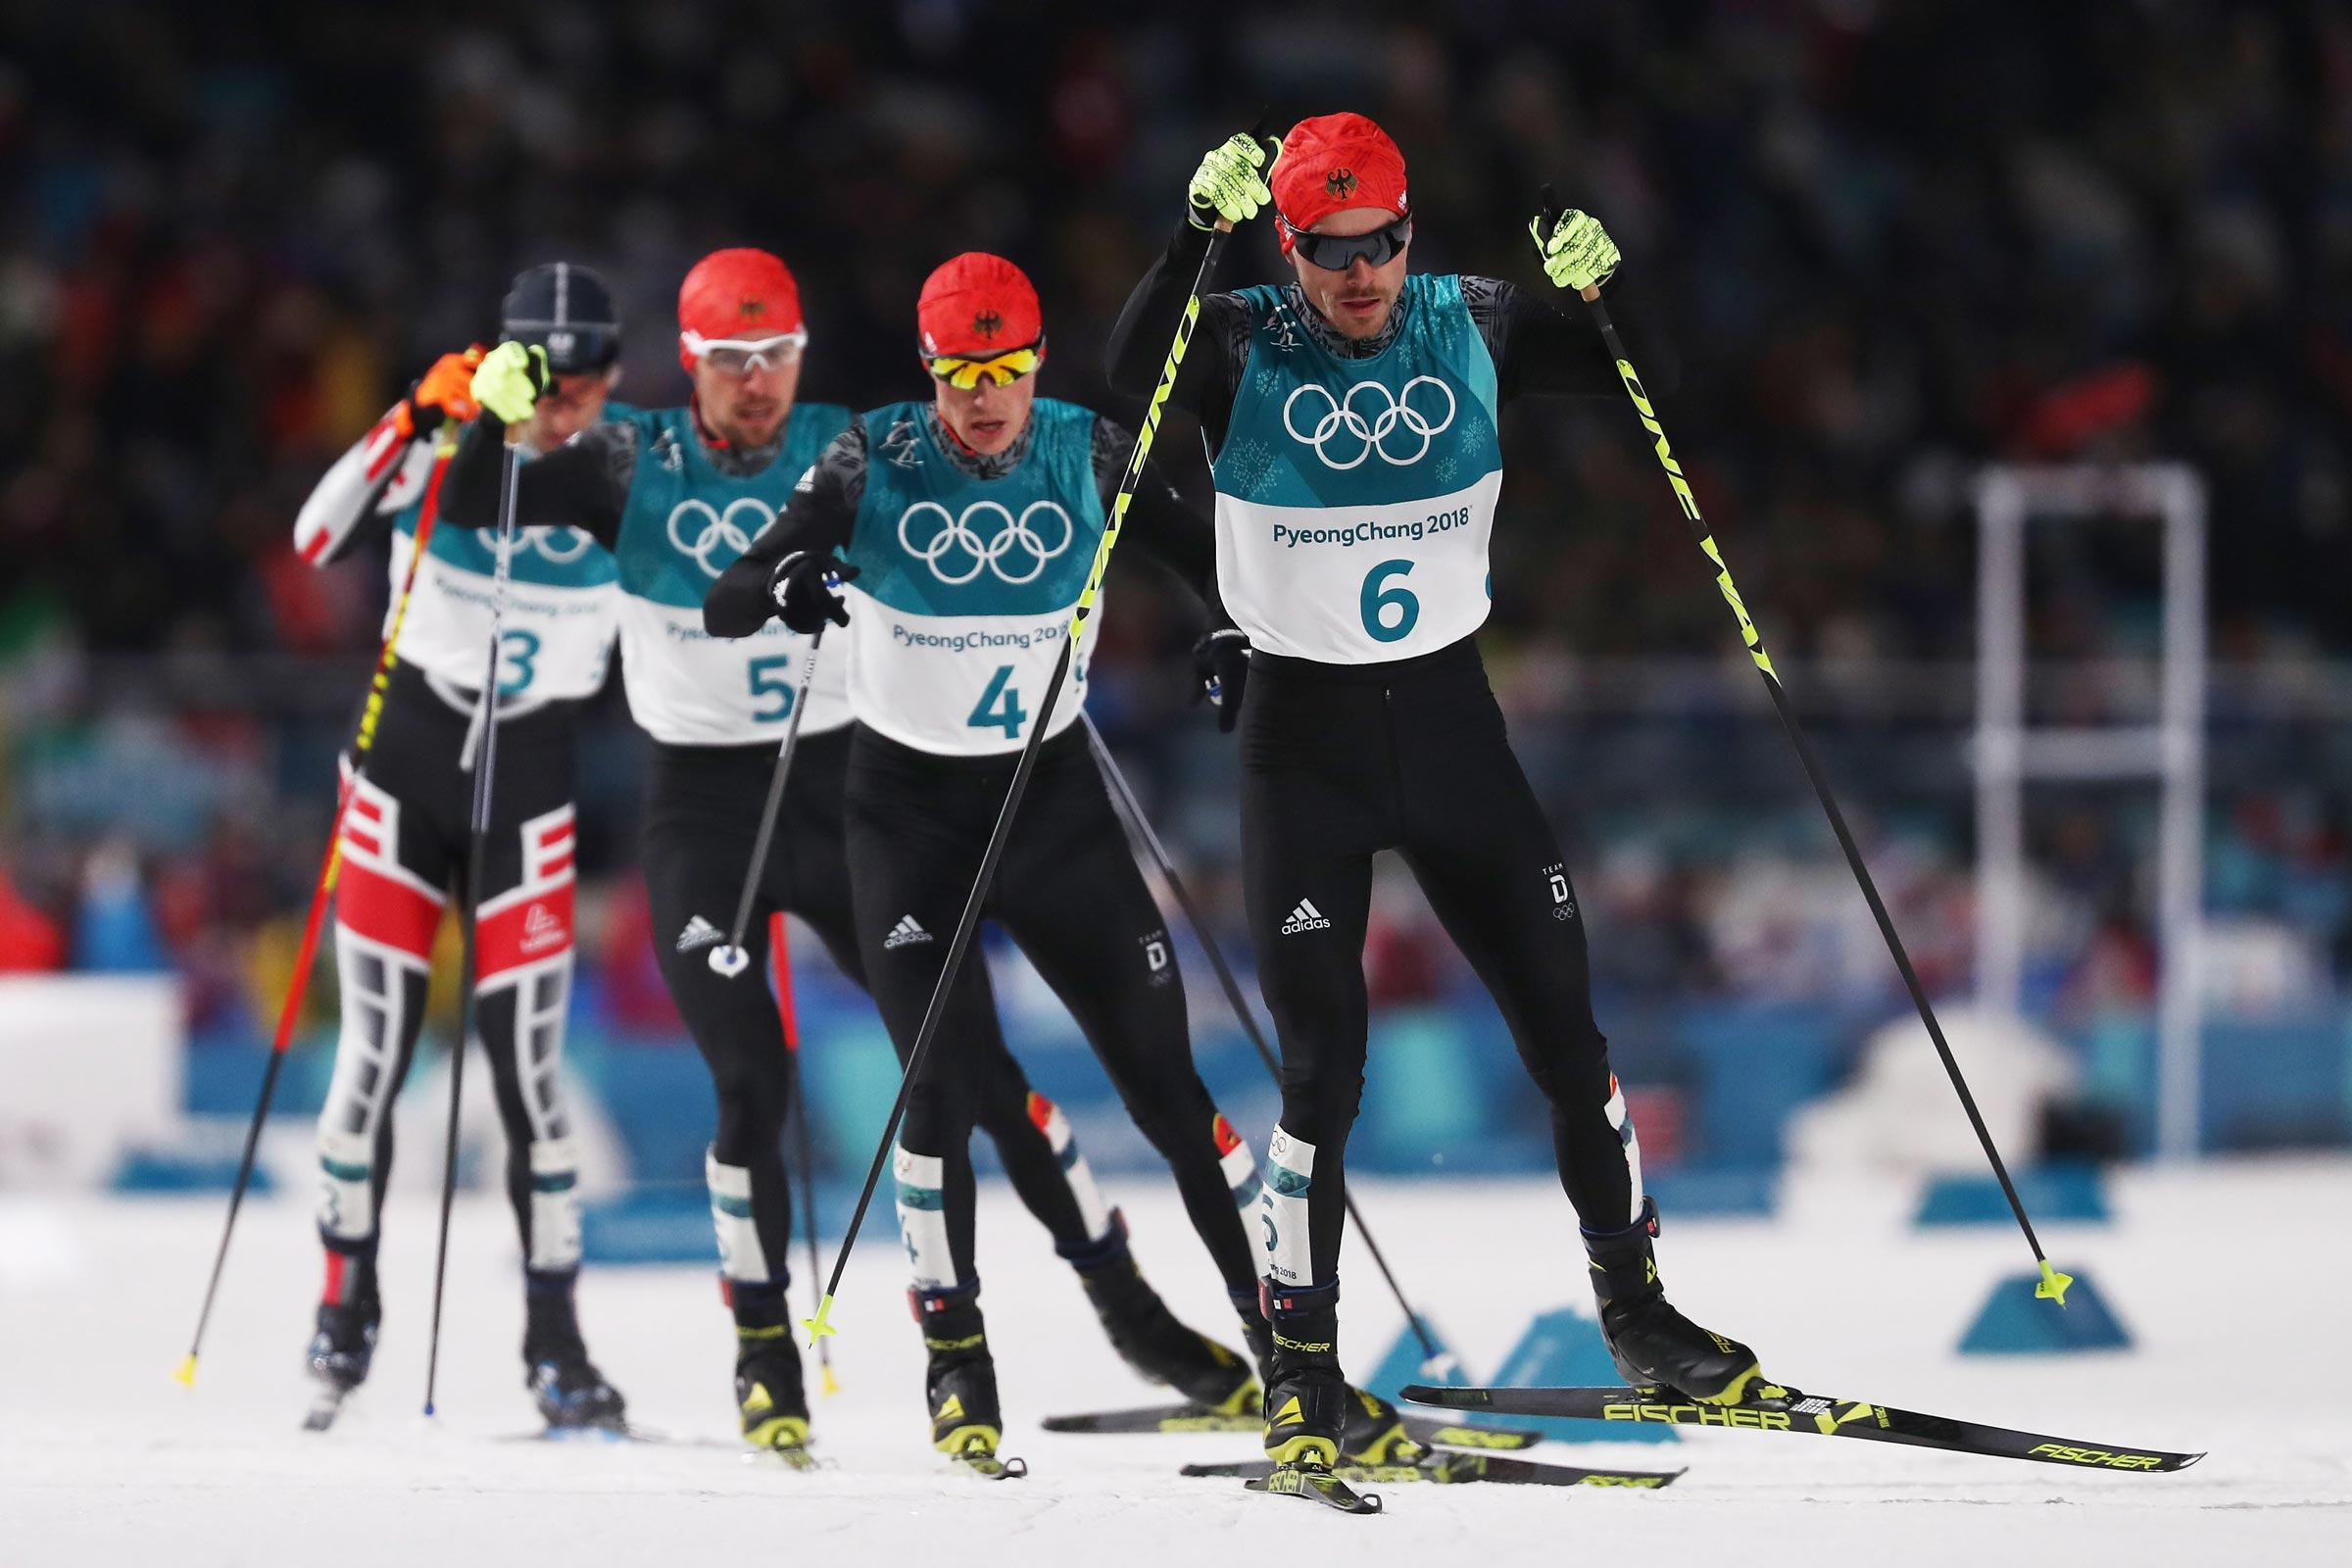 Nordic Combined - Individual Gundersen LH/10km Cross-Country